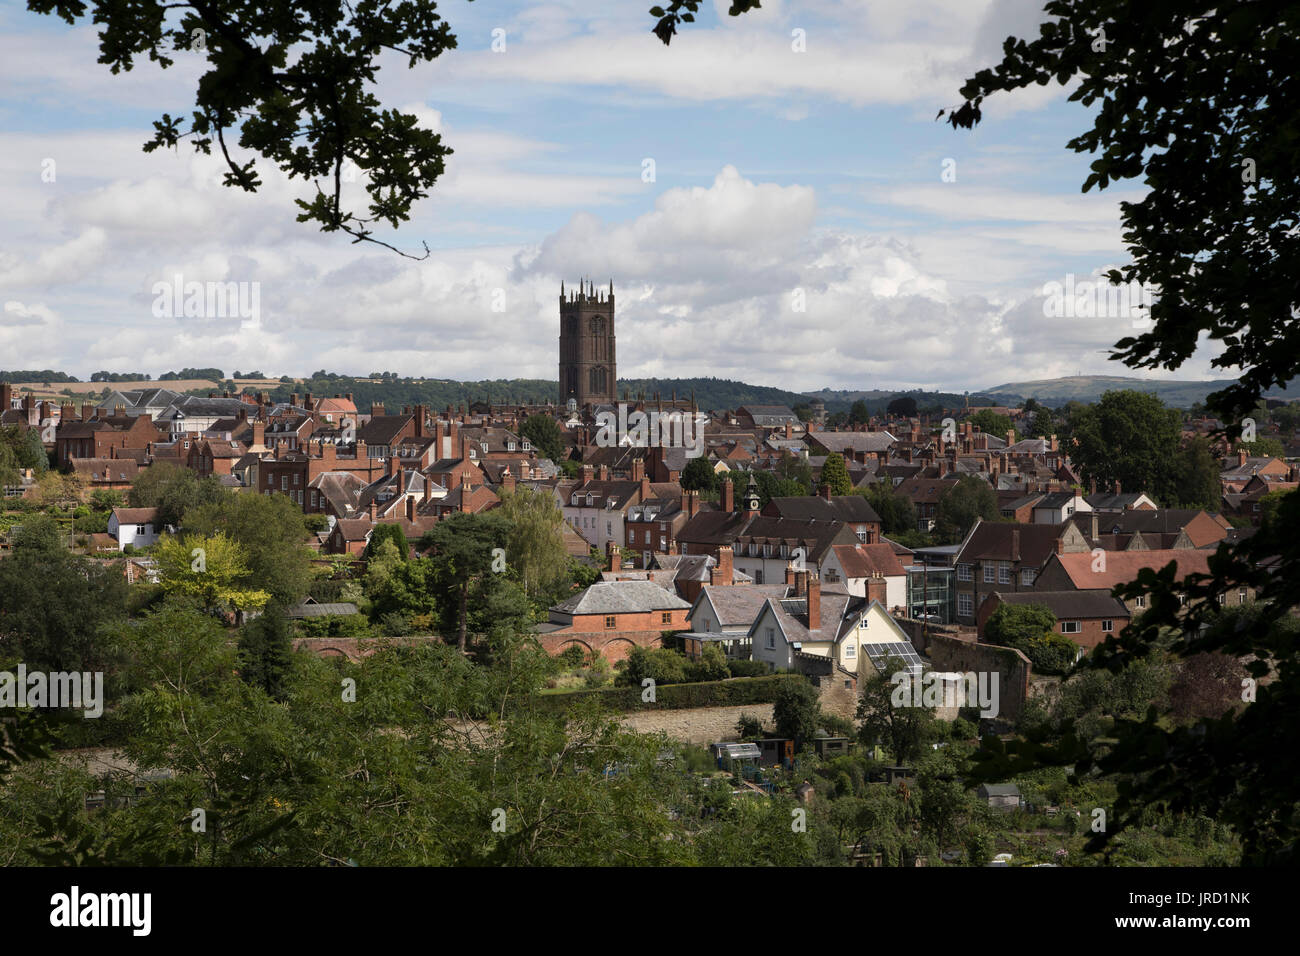 View towards the town of Ludlow and the parish church of St Laurences. Ludlow is a market town in Shropshire, England. With a population of approximately 11,000, Ludlow is the largest town in south Shropshire. The town is near the confluence of two rivers. The oldest part is the medieval walled town, founded in the late 11th century after the Norman conquest of England. It is centred on a small hill which lies on the eastern bank of a bend of the River Teme. Atop this hill is Ludlow Castle and the parish church, St Laurences, the largest in the county. From there the streets slope downward to  - Stock Image